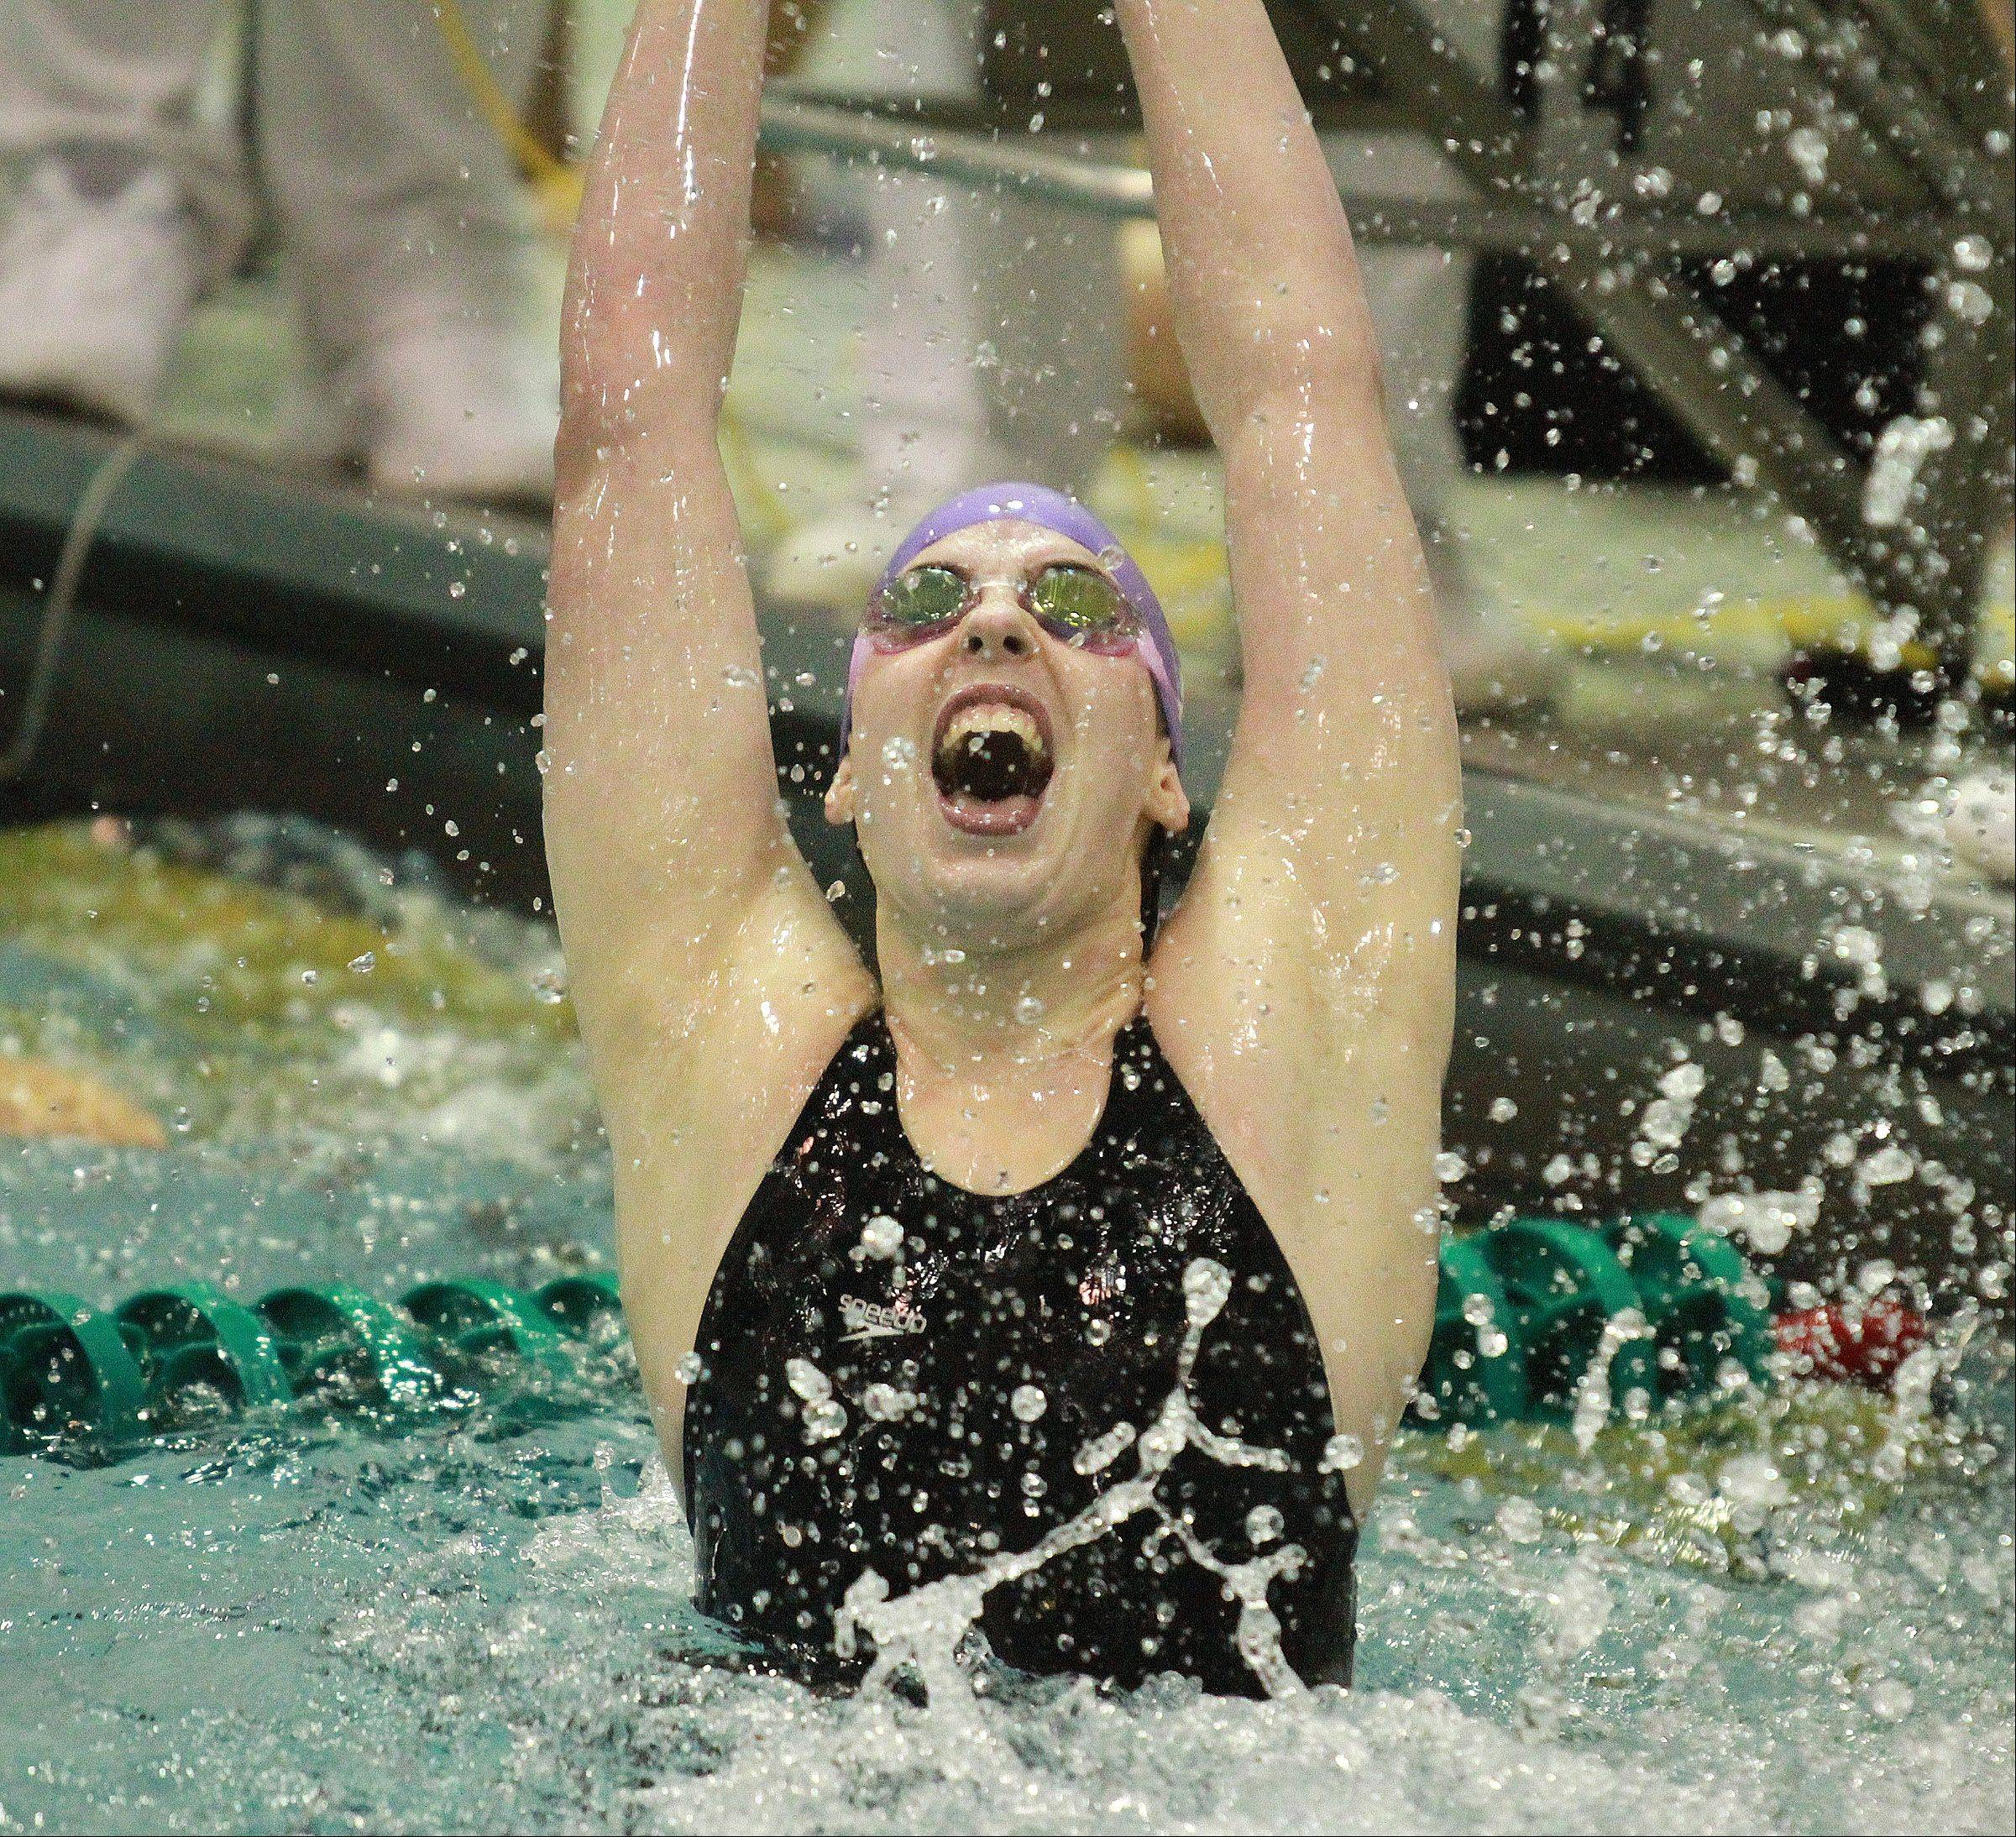 Downers Grove North's Gabby Sims celebrates after swimming the last leg of the 400 yard free style relay and taking 2nd place in the event at the girls state swimming finals on Saturday in Winnetka.